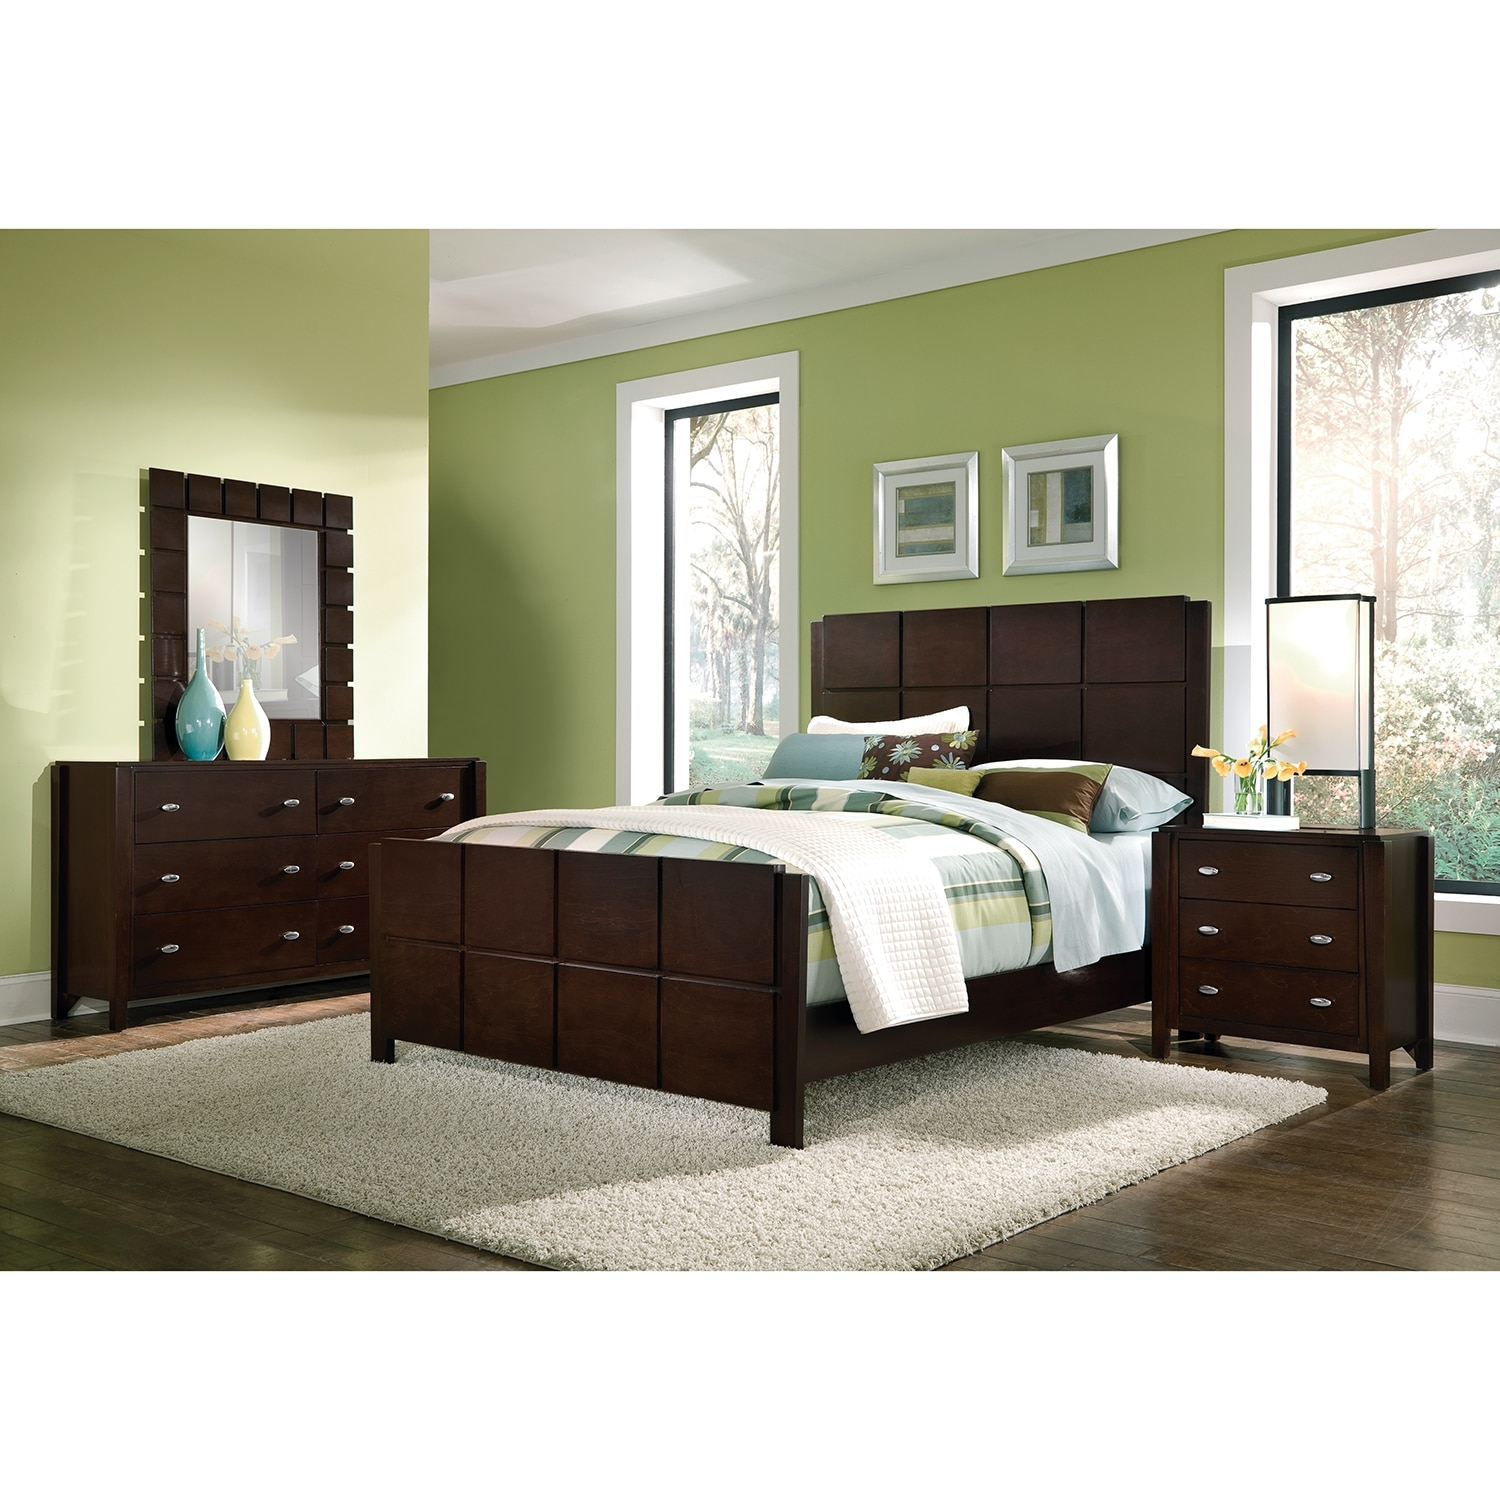 Mosaic 6 piece queen bedroom set dark brown value city for Furniture queen bedroom sets